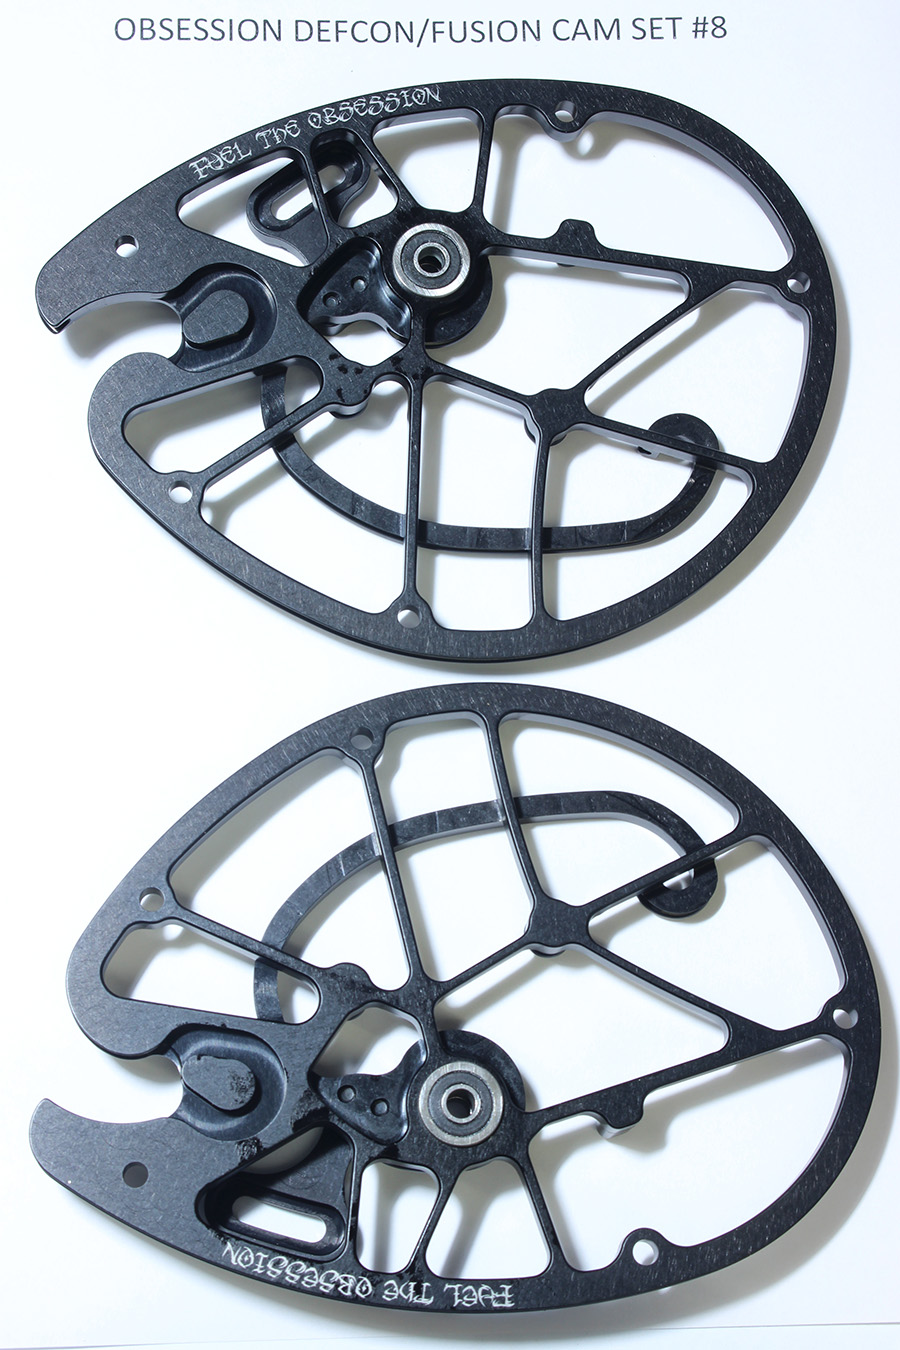 OEM Obsession Archery Defcon/Fusion 2-PC Cam Set, Size #8 (Top & Bottom) photo 1